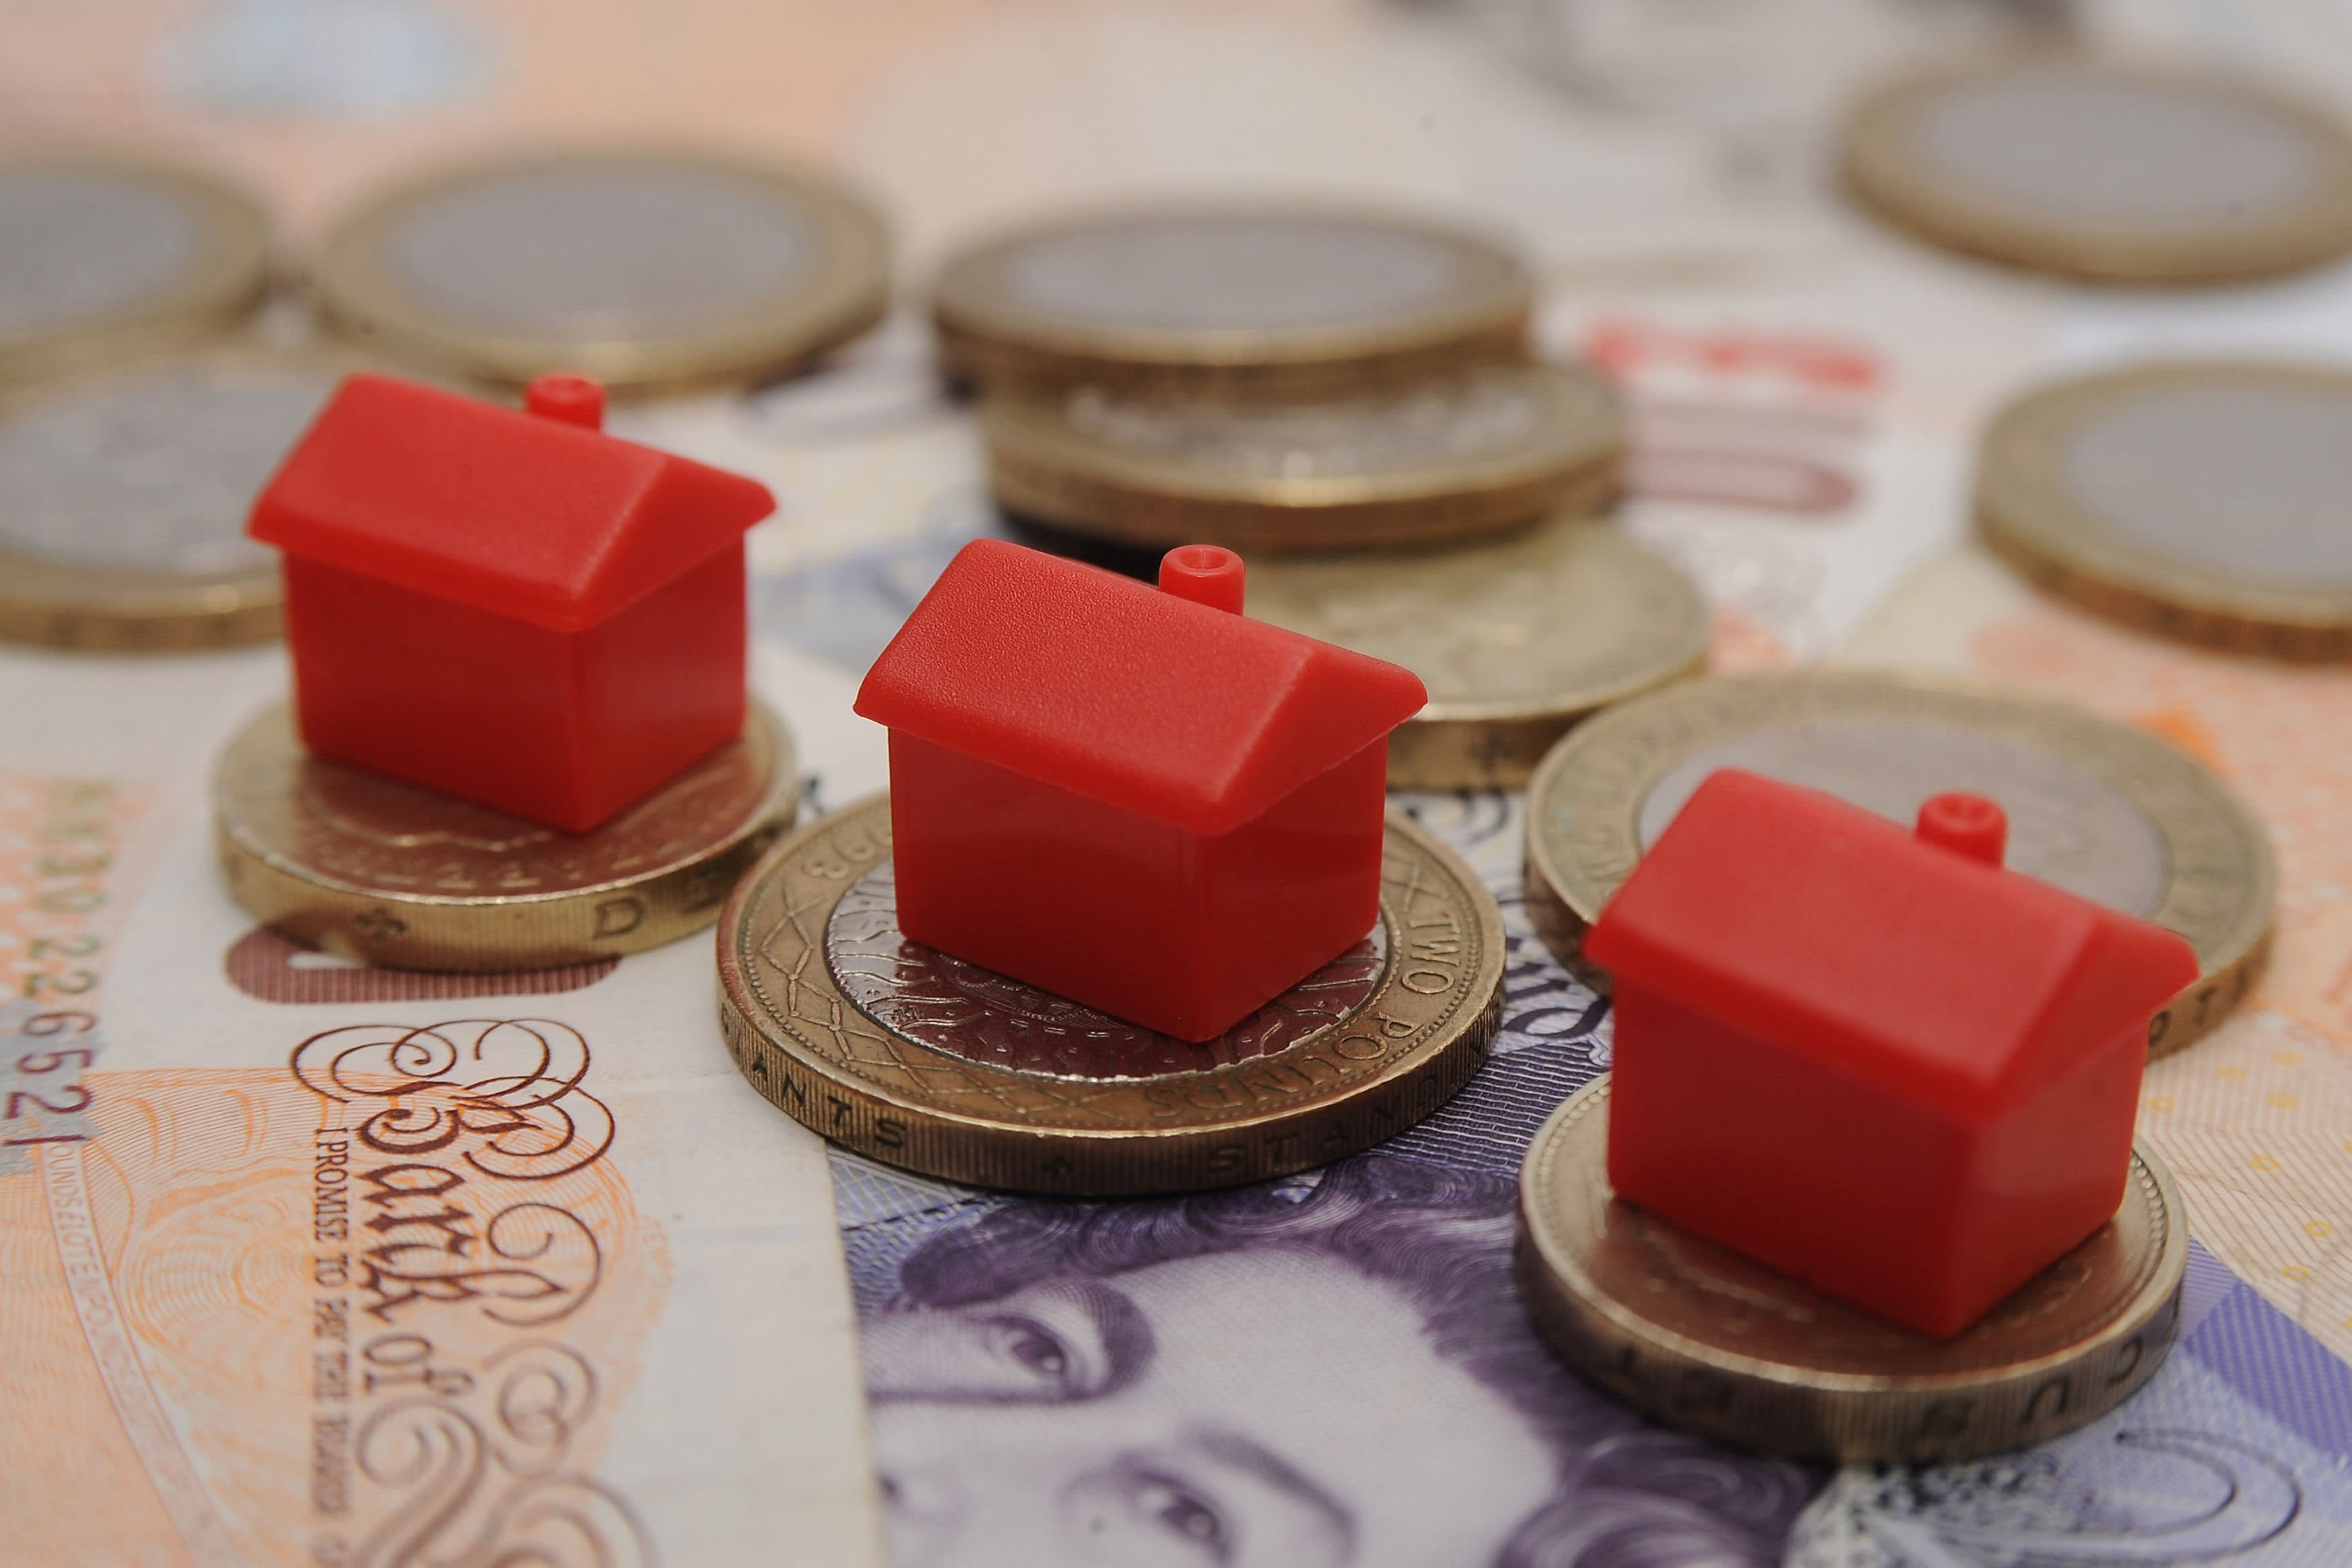 Younger borrowers predicted to drive equity release growth